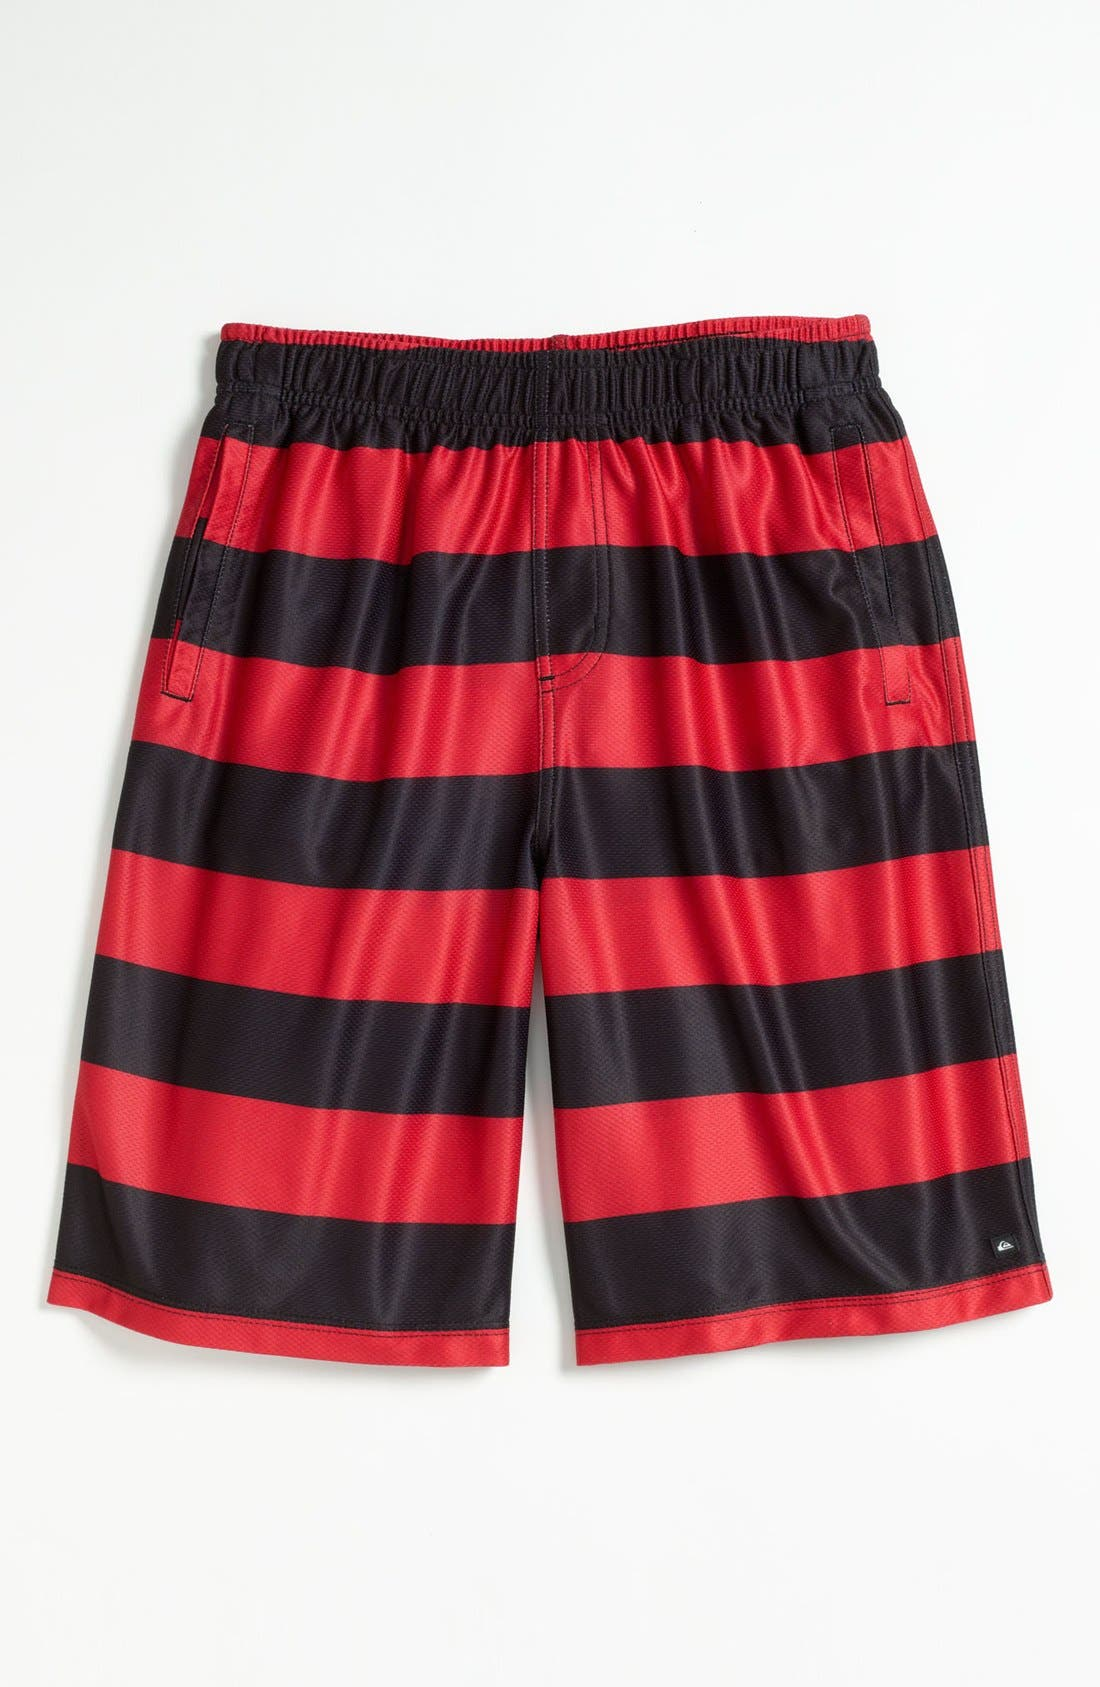 Alternate Image 1 Selected - Quiksilver Stripe Beach Shorts (Little Boys)